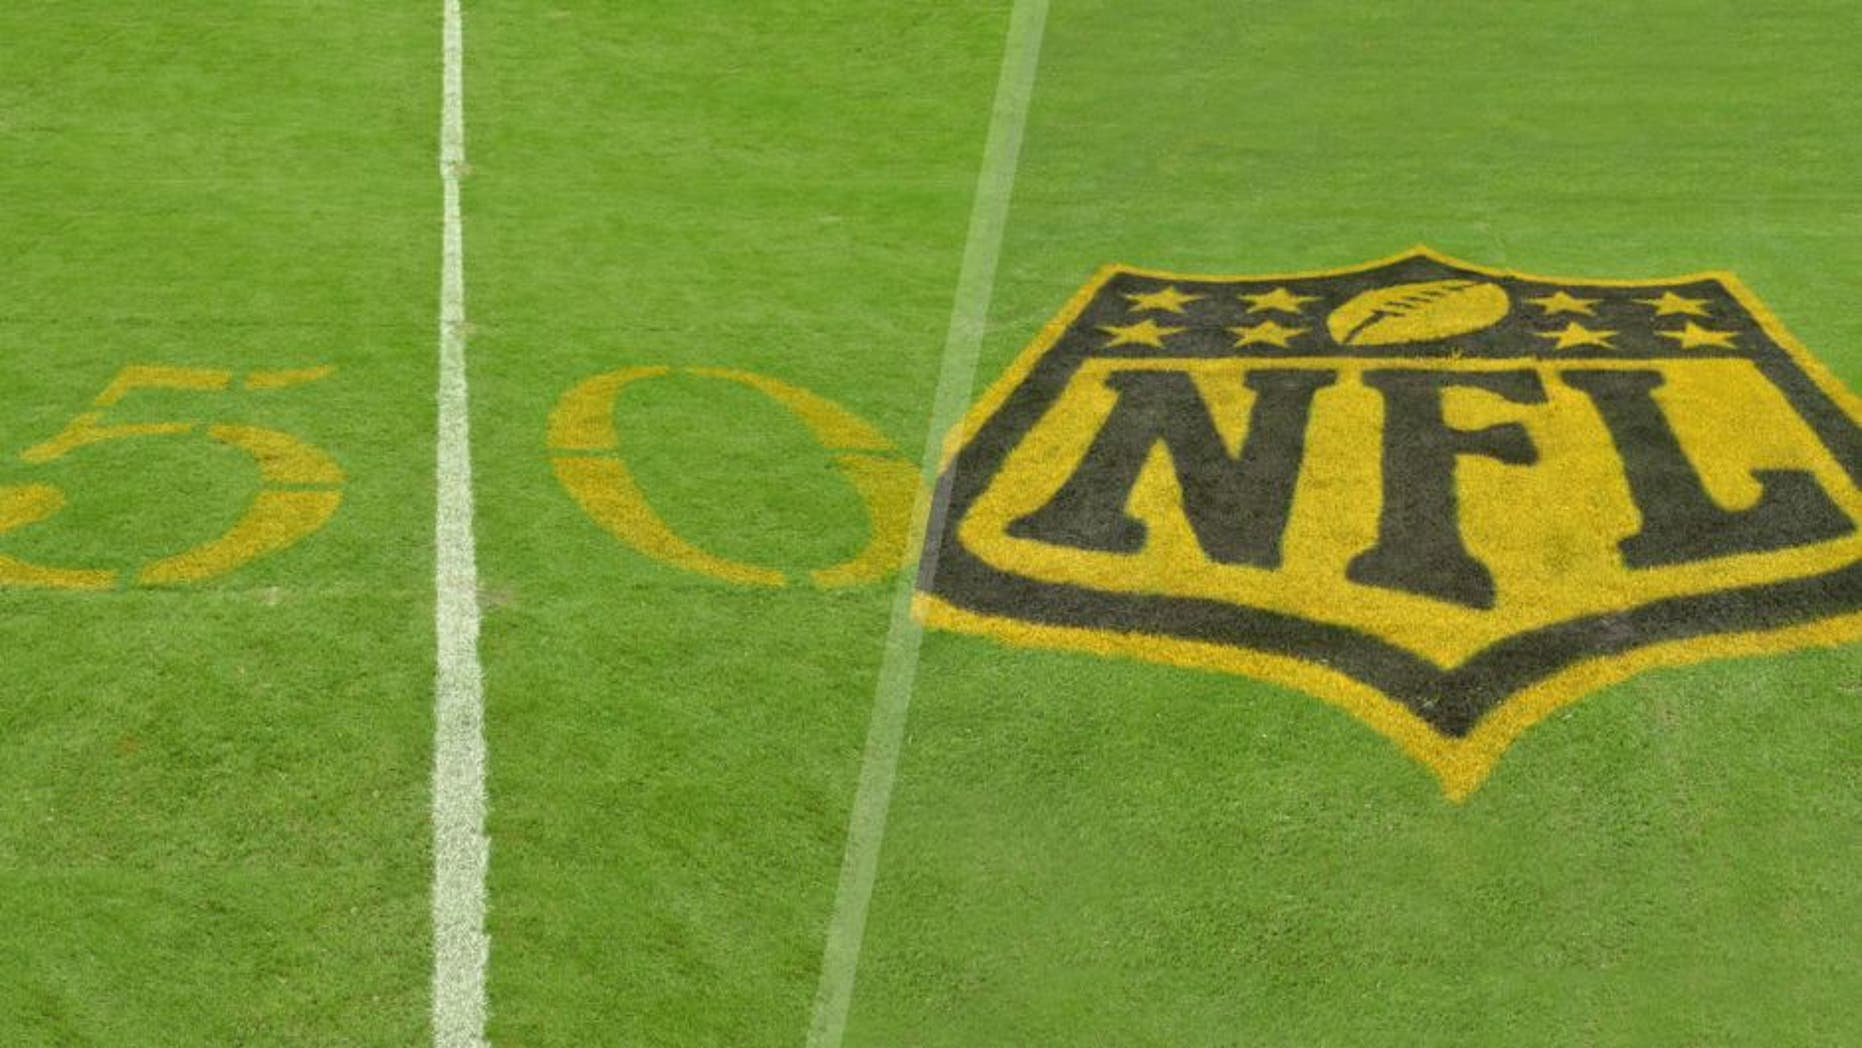 Aug 15, 2015; Houston, TX, USA; General view of golden numerals on the 50-yard line to commemorate Super Bowl 50 during the preseason NFL game between San Francisco 49ers and the Houston Texans at NRG Stadium. Mandatory Credit: Kirby Lee-USA TODAY Sports Aug 15, 2015; Houston, TX, USA; General view of golden NFL shield logo in the end zone to commemorate Super Bowl 50 during the preseason NFL game between San Francisco 49ers and the Houston Texans at NRG Stadium. Mandatory Credit: Kirby Lee-USA TODAY Sports